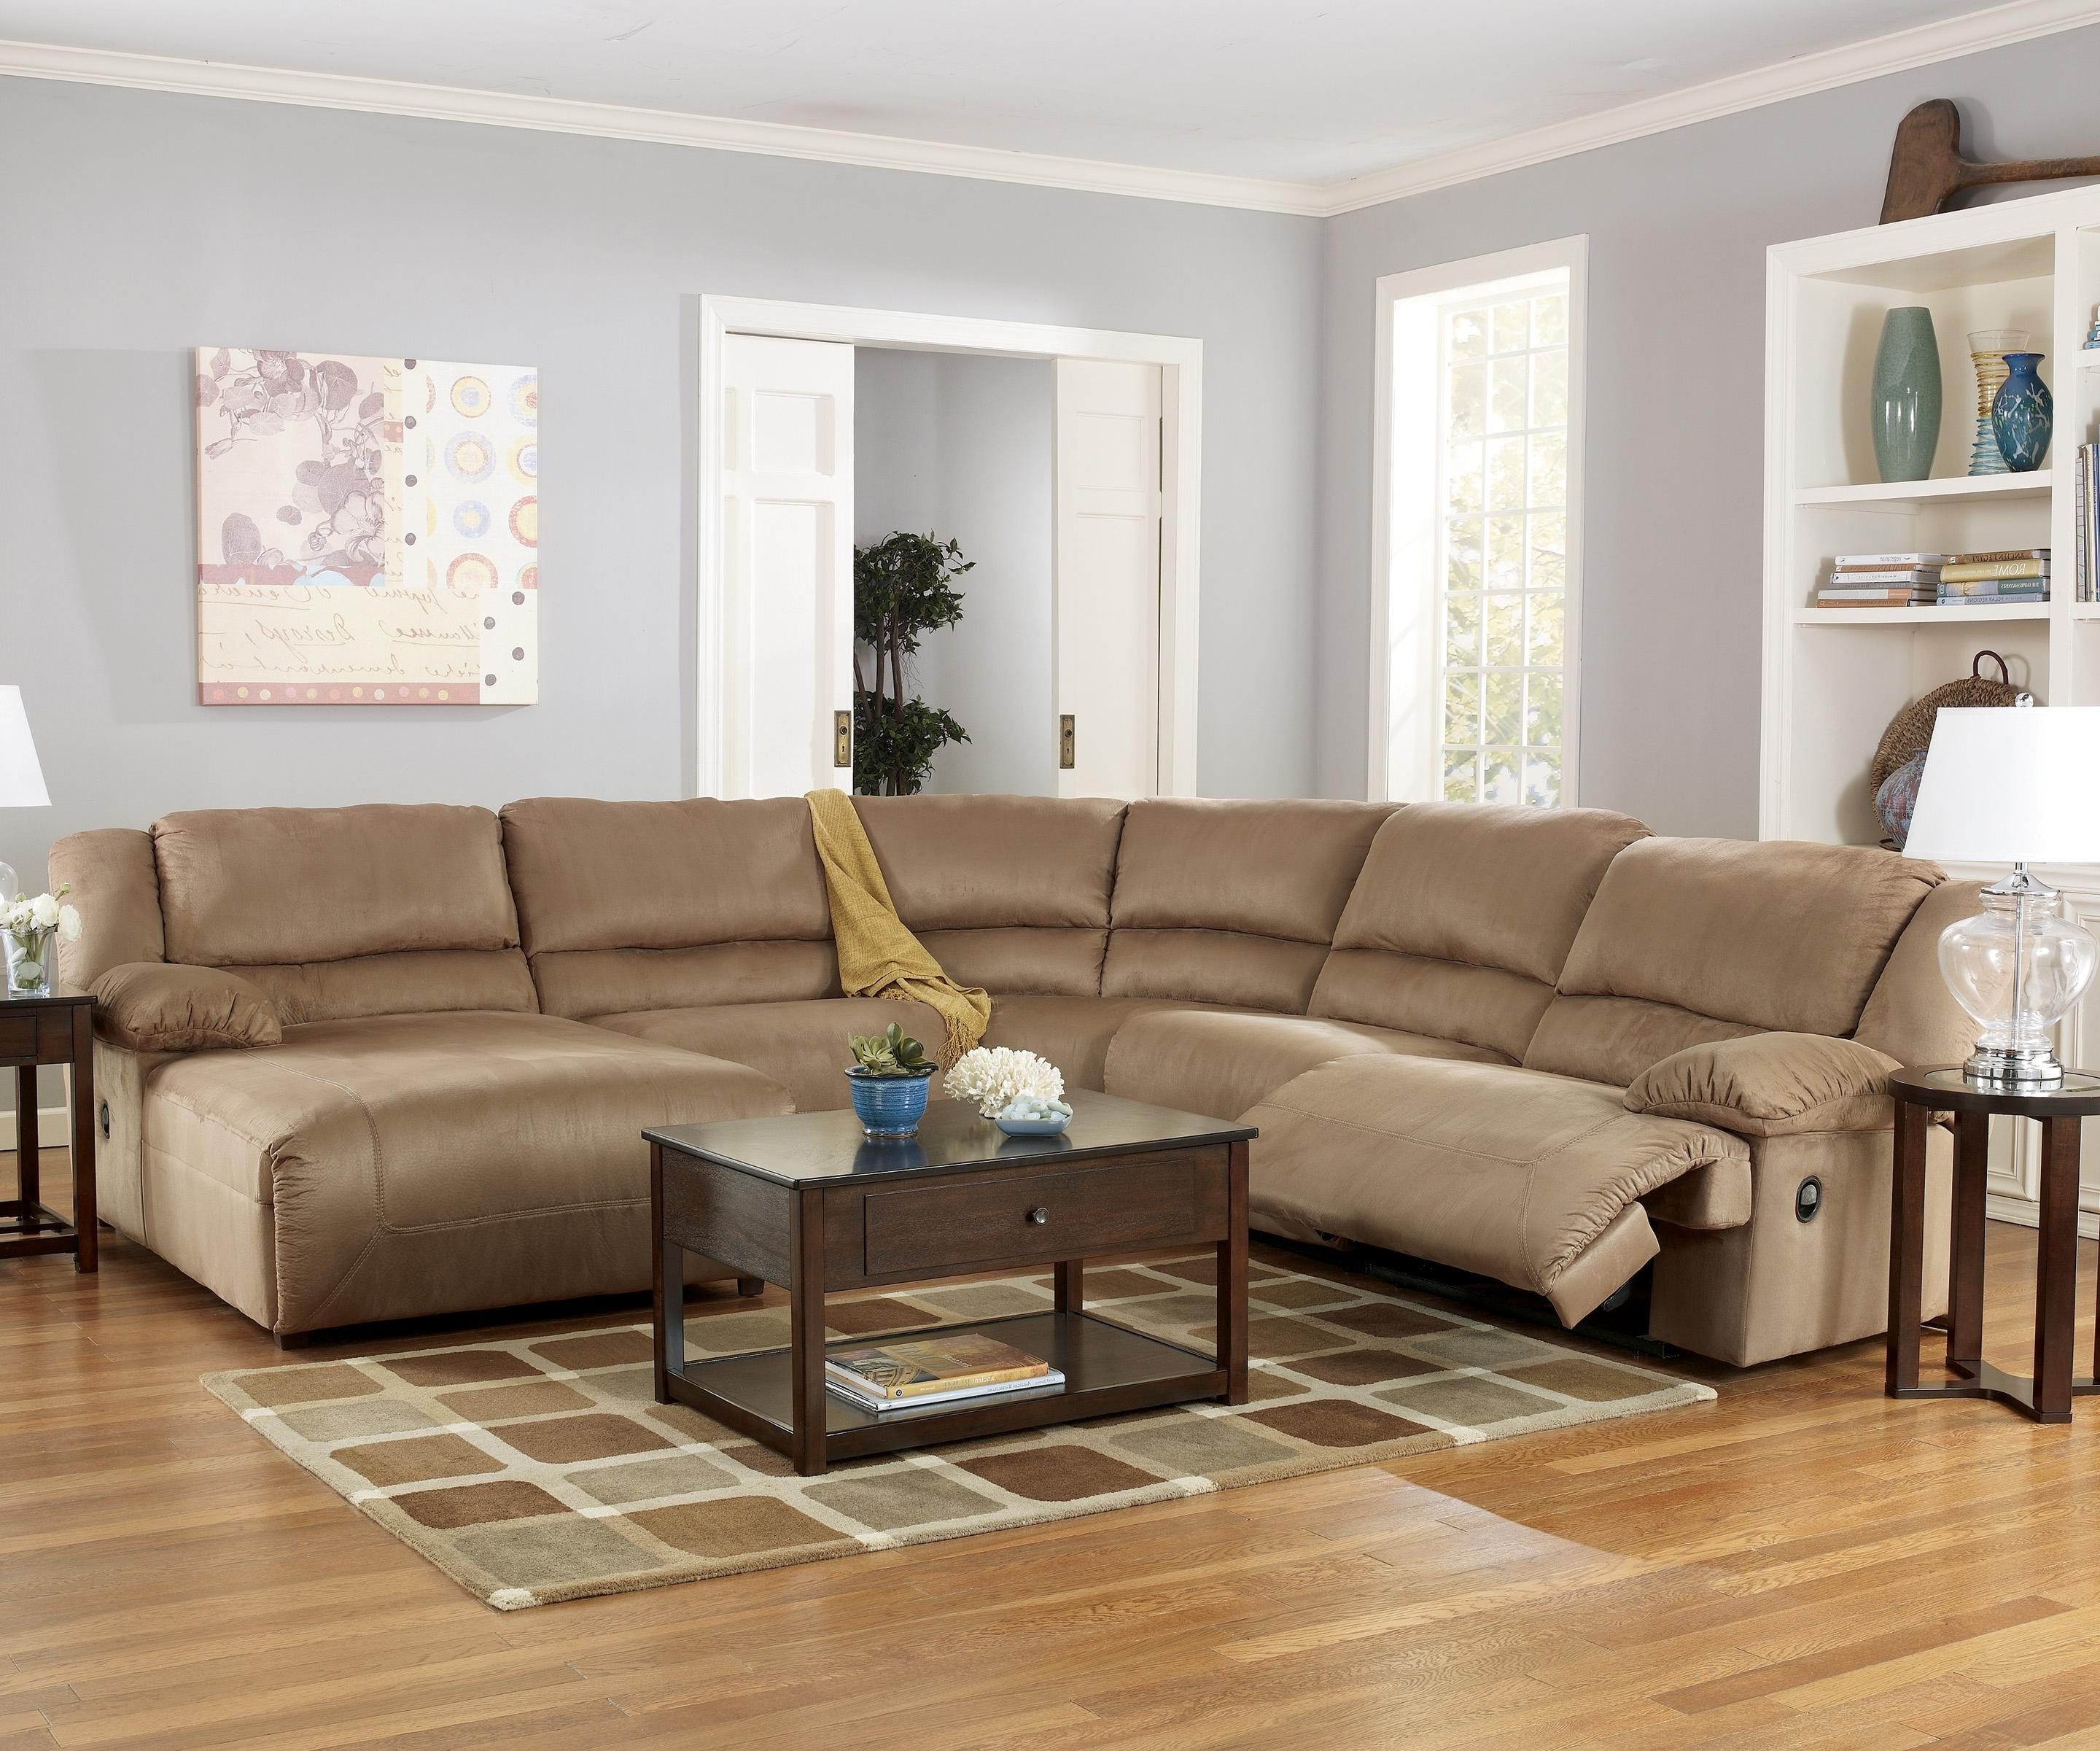 El Paso Texas Sectional Sofas With Regard To Popular Furniture: Ashley Furniture San Antonio Tx (View 10 of 20)